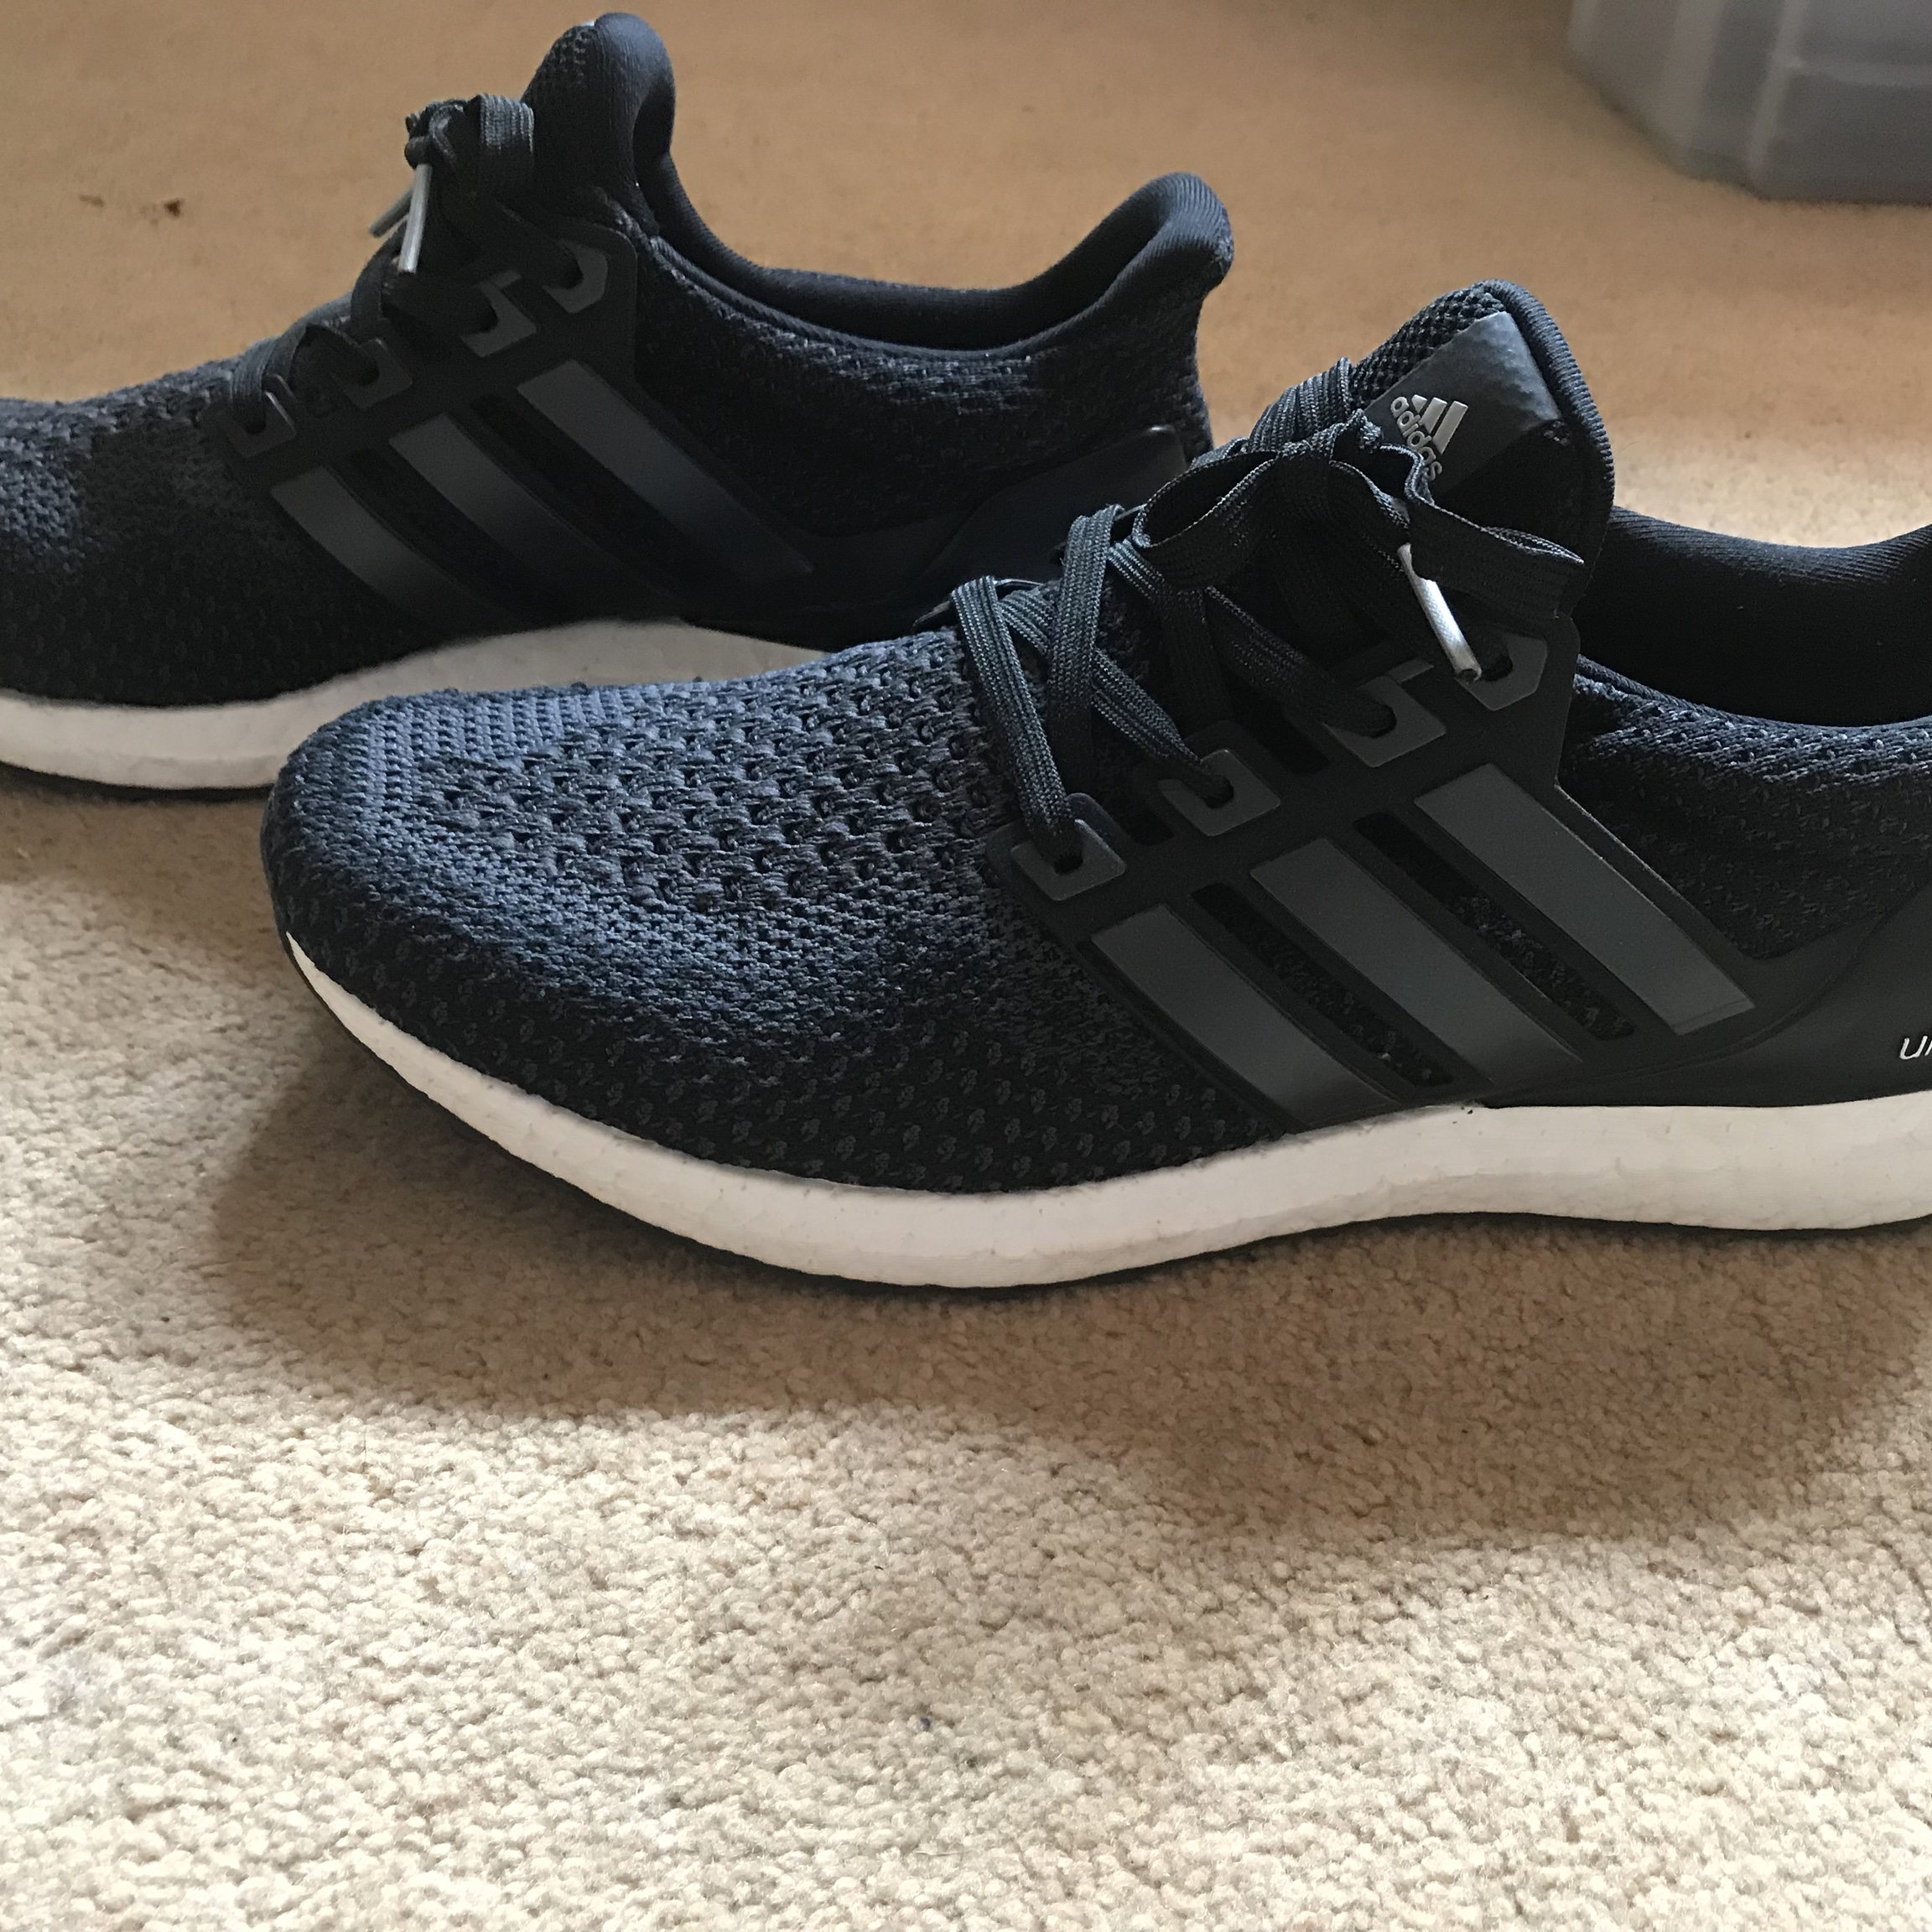 separation shoes b2c2a 9939e Adidas Ultra boost 2.0 Black Grey Great condition... - Depop